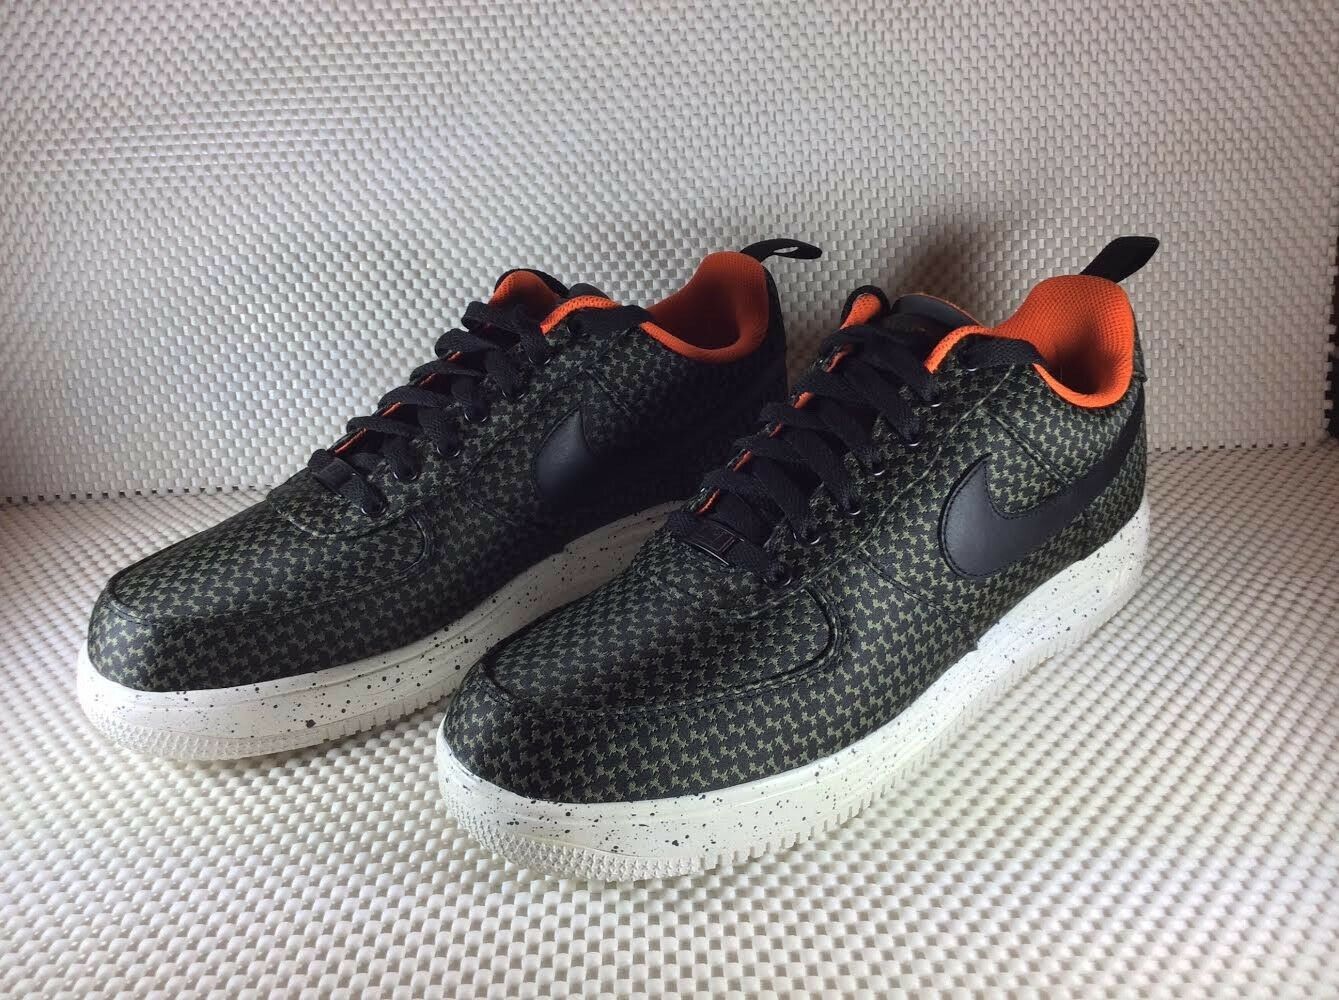 Hombre Nike  Force 1  Nike 10.5 Tenis Air Zapatos  Tenis Nike Zapatos  Undefeated Con Caja 14449e